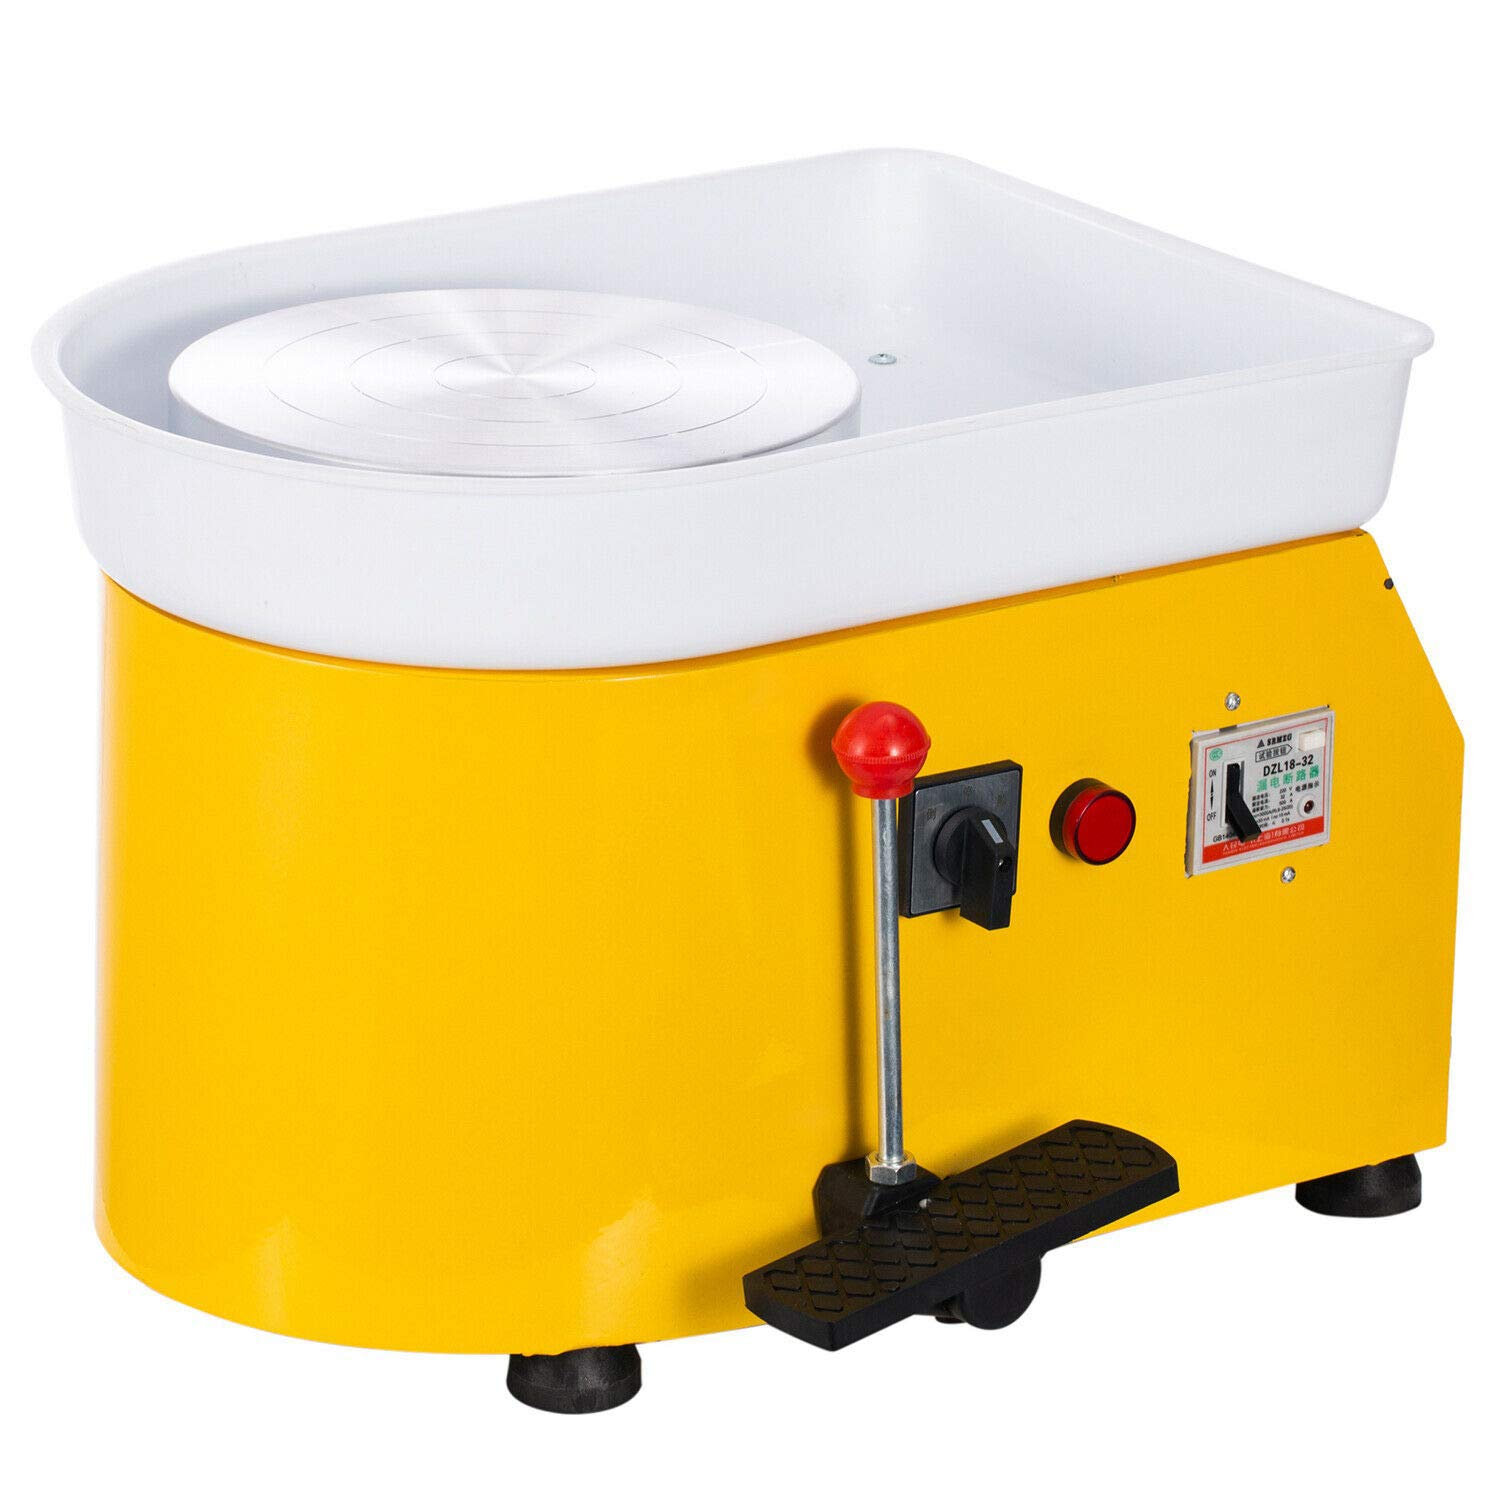 Lfhelper Electric Pottery Making Wheel Machine DIY Tools Clay Handiwork Equipment Yellow